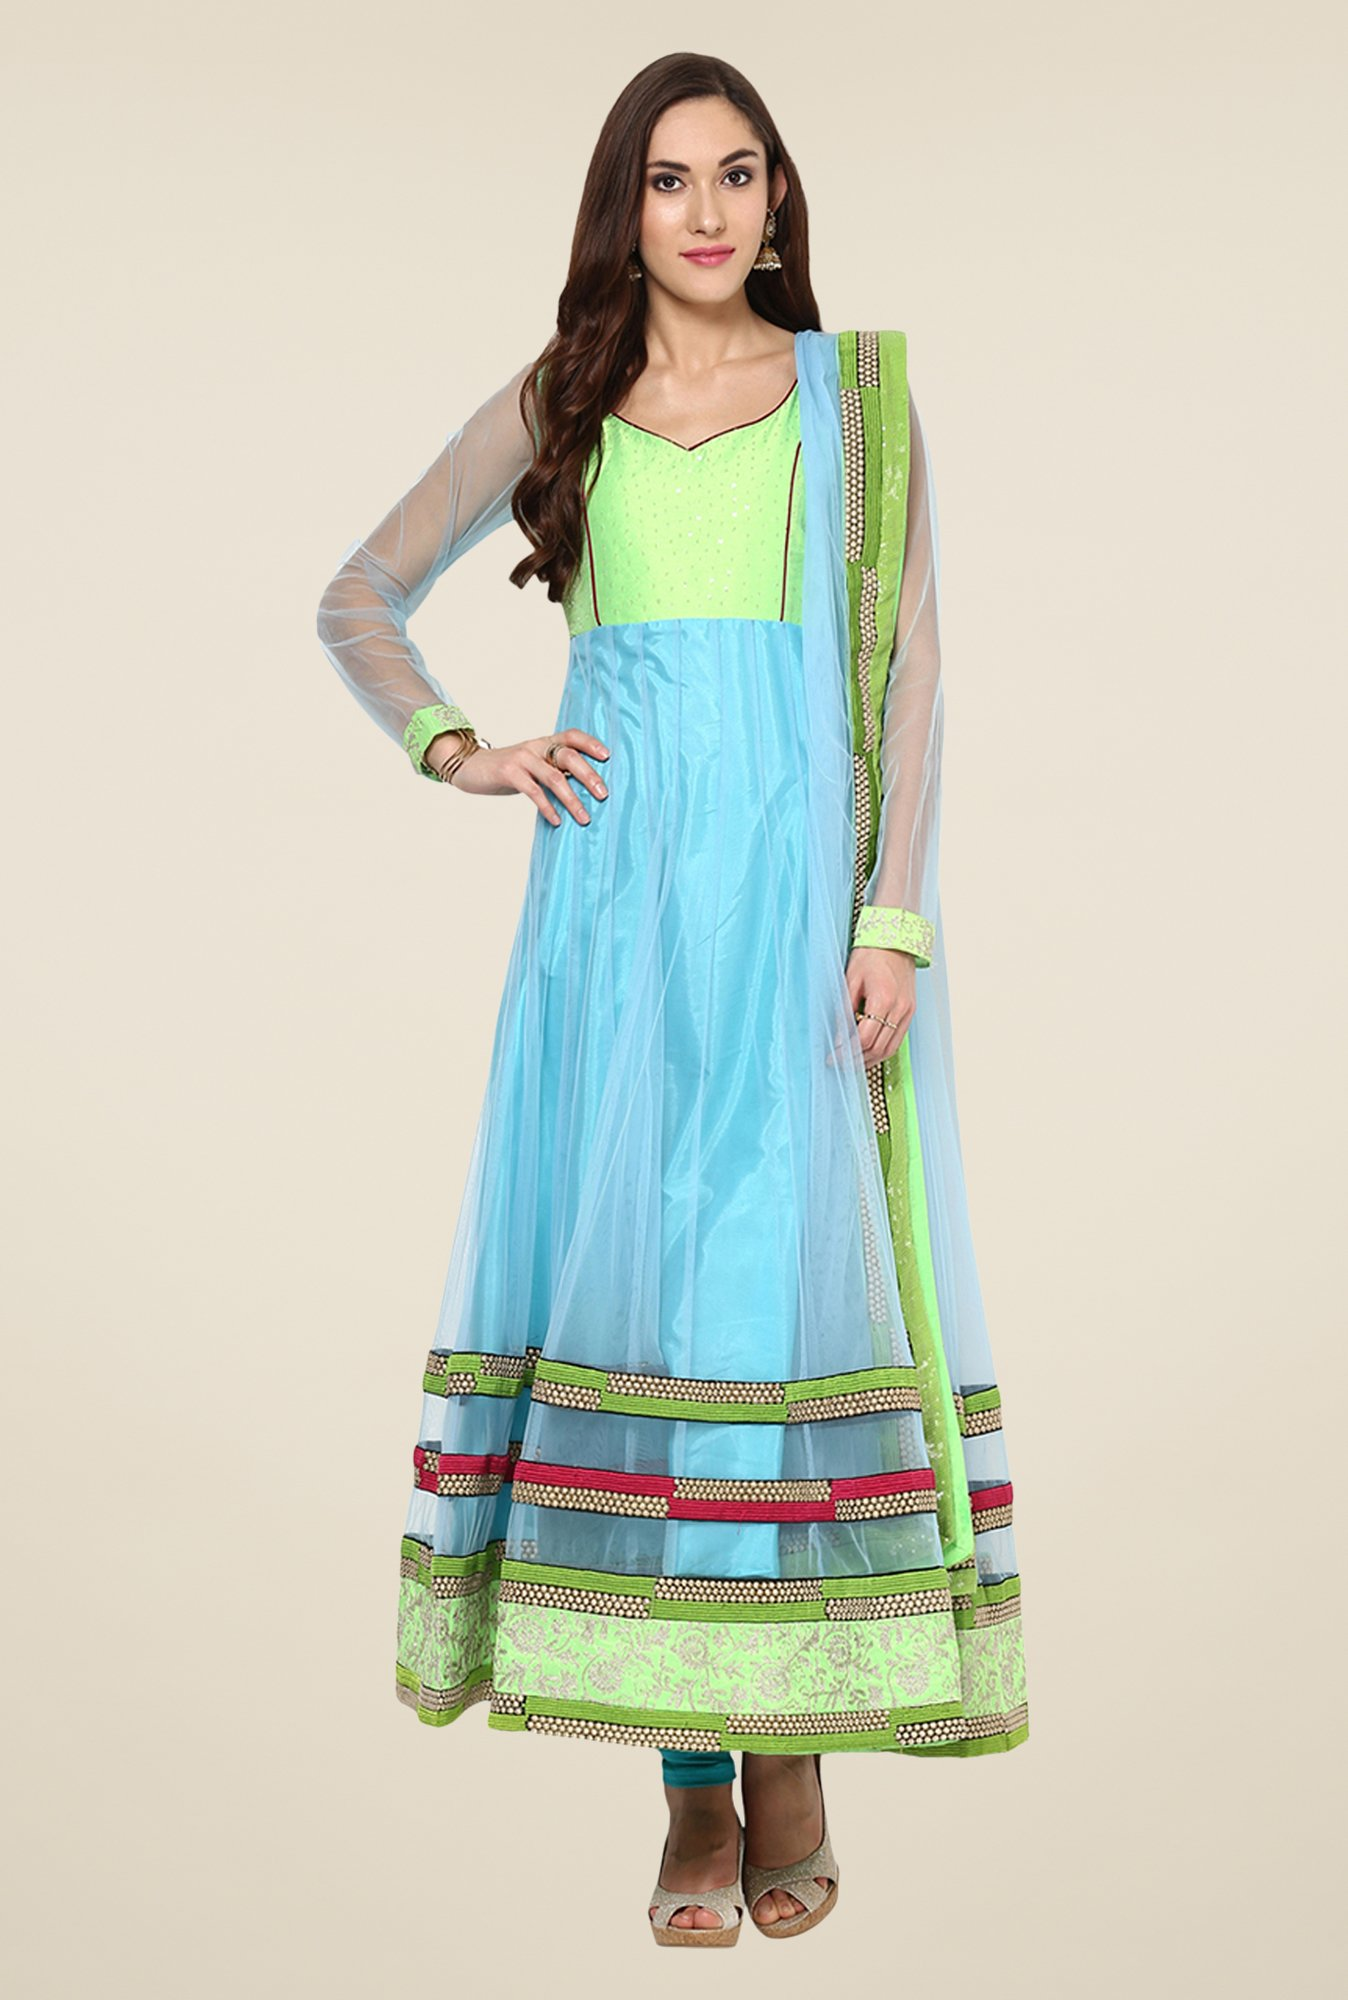 Yepme Green & Blue Zenomi Salwar Suit Set